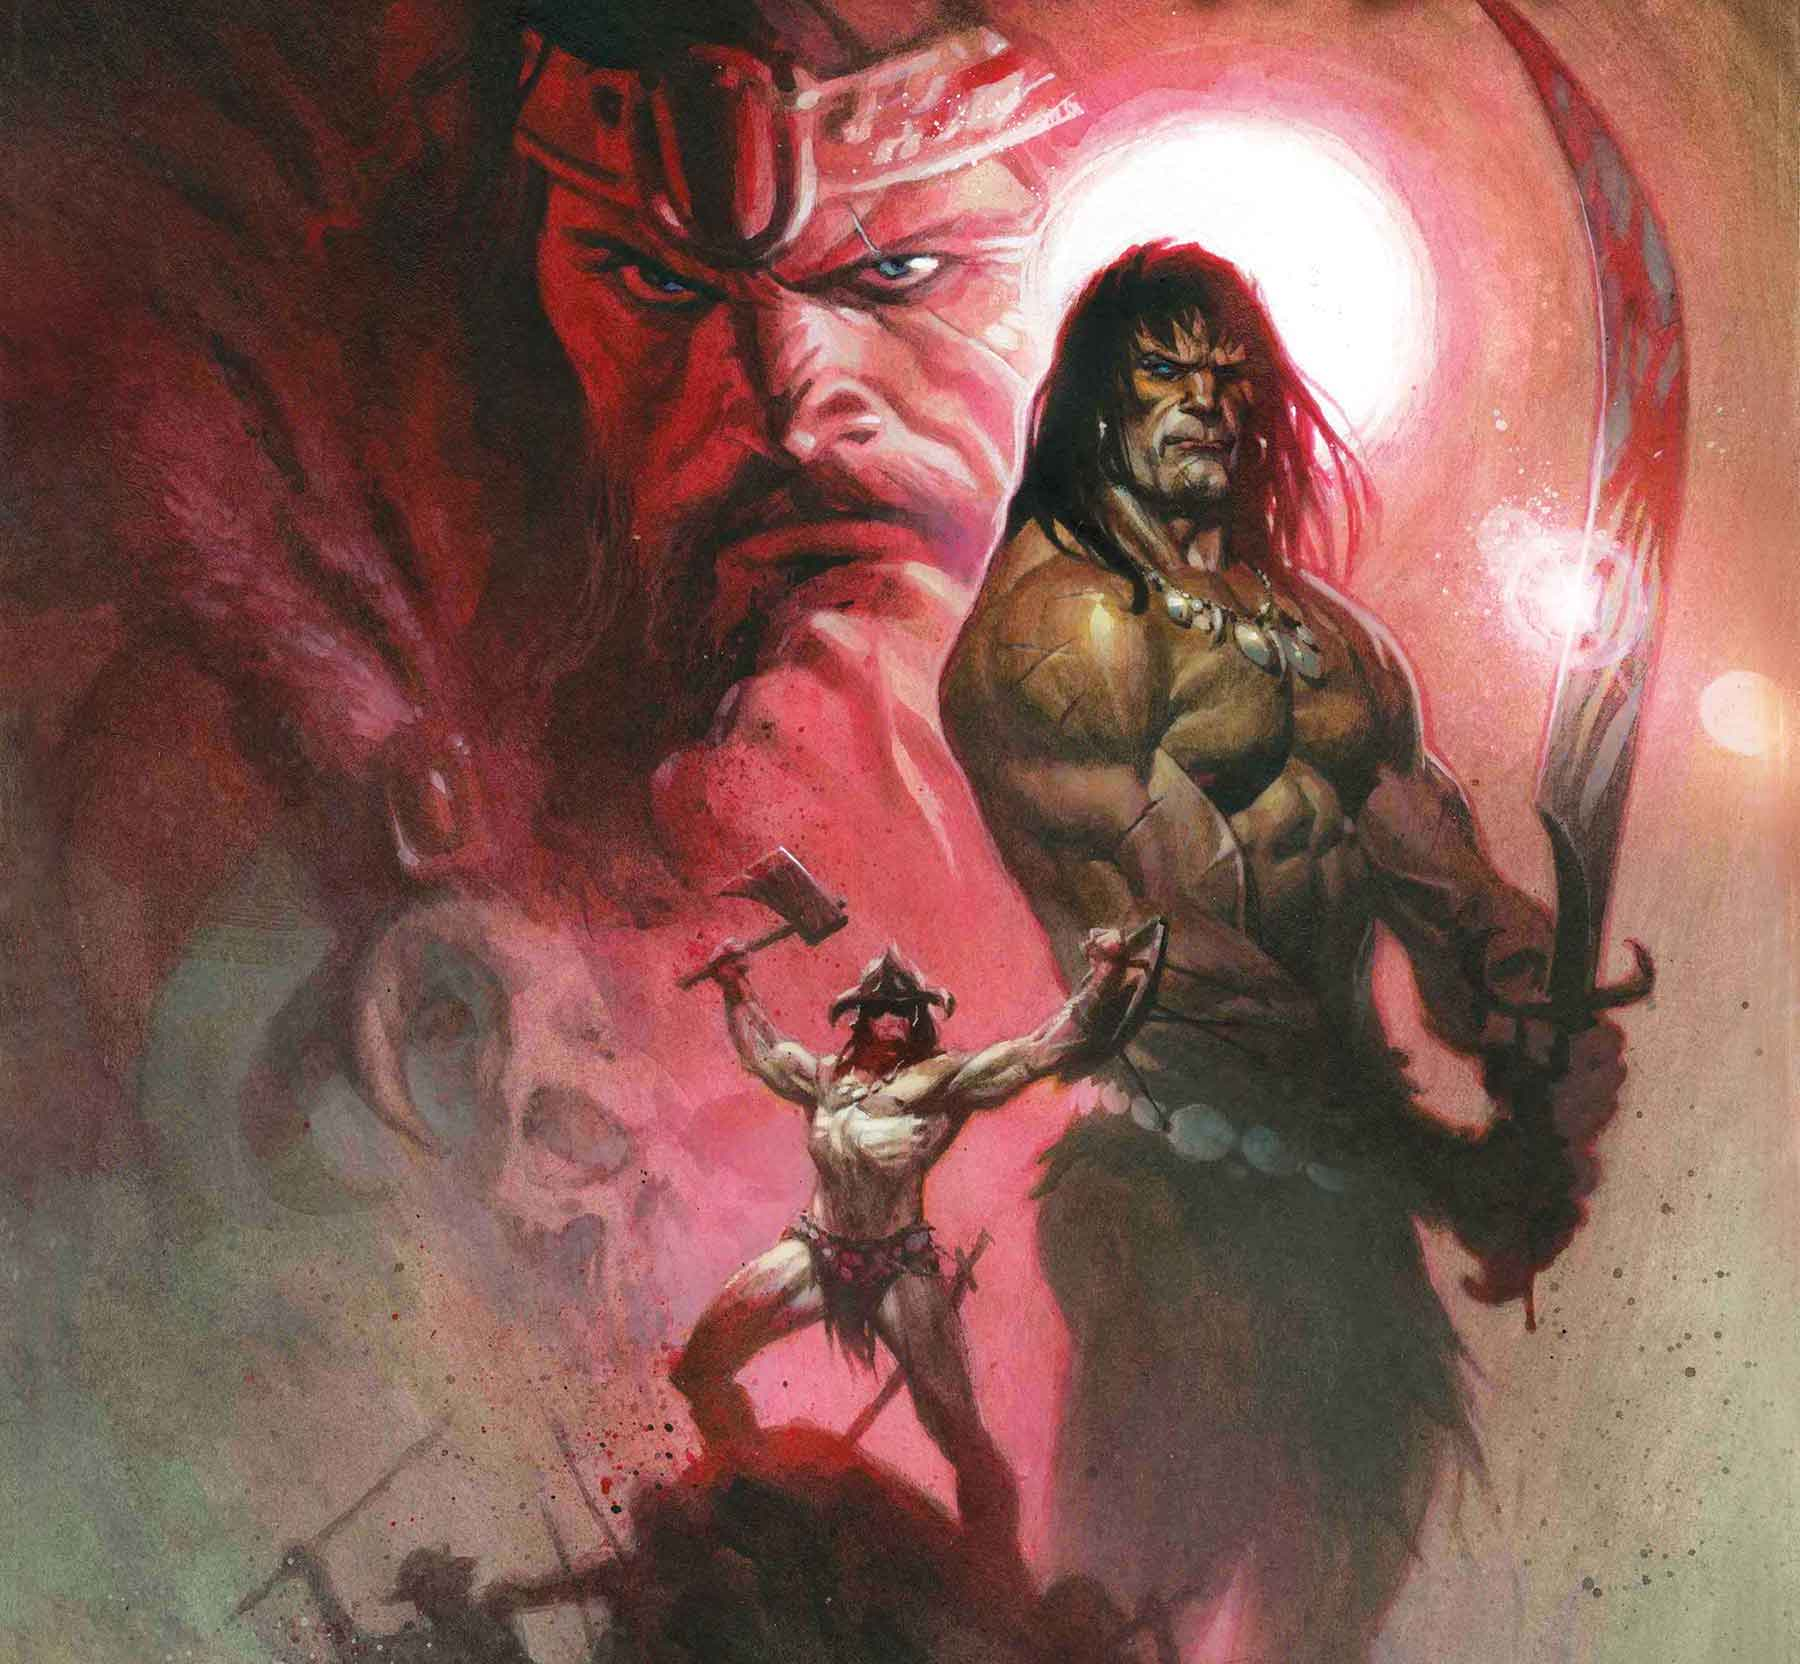 Marvel launches 'King-Size Conan' trailer celebrating 50 years